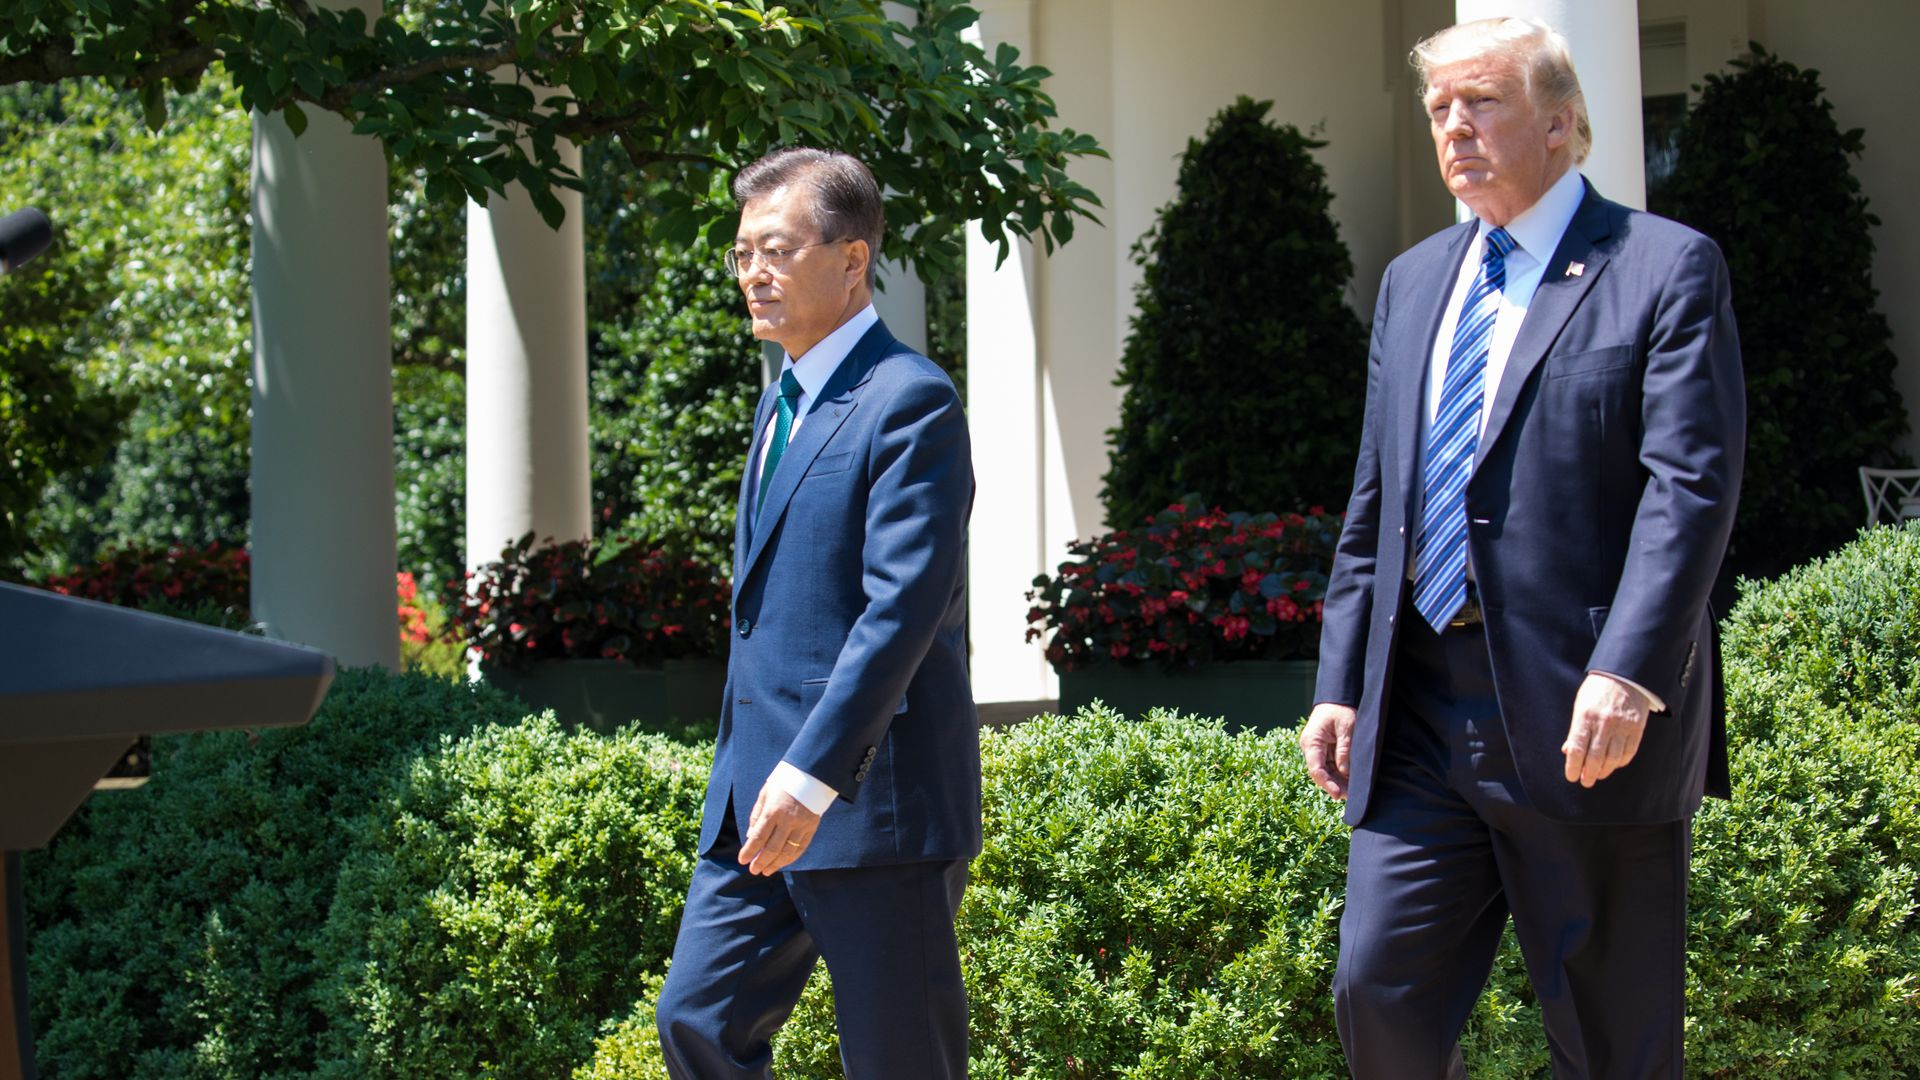 President Moon of the Republic of Korea, and U.S. President Trump walk from the Oval Office for their joint press conference